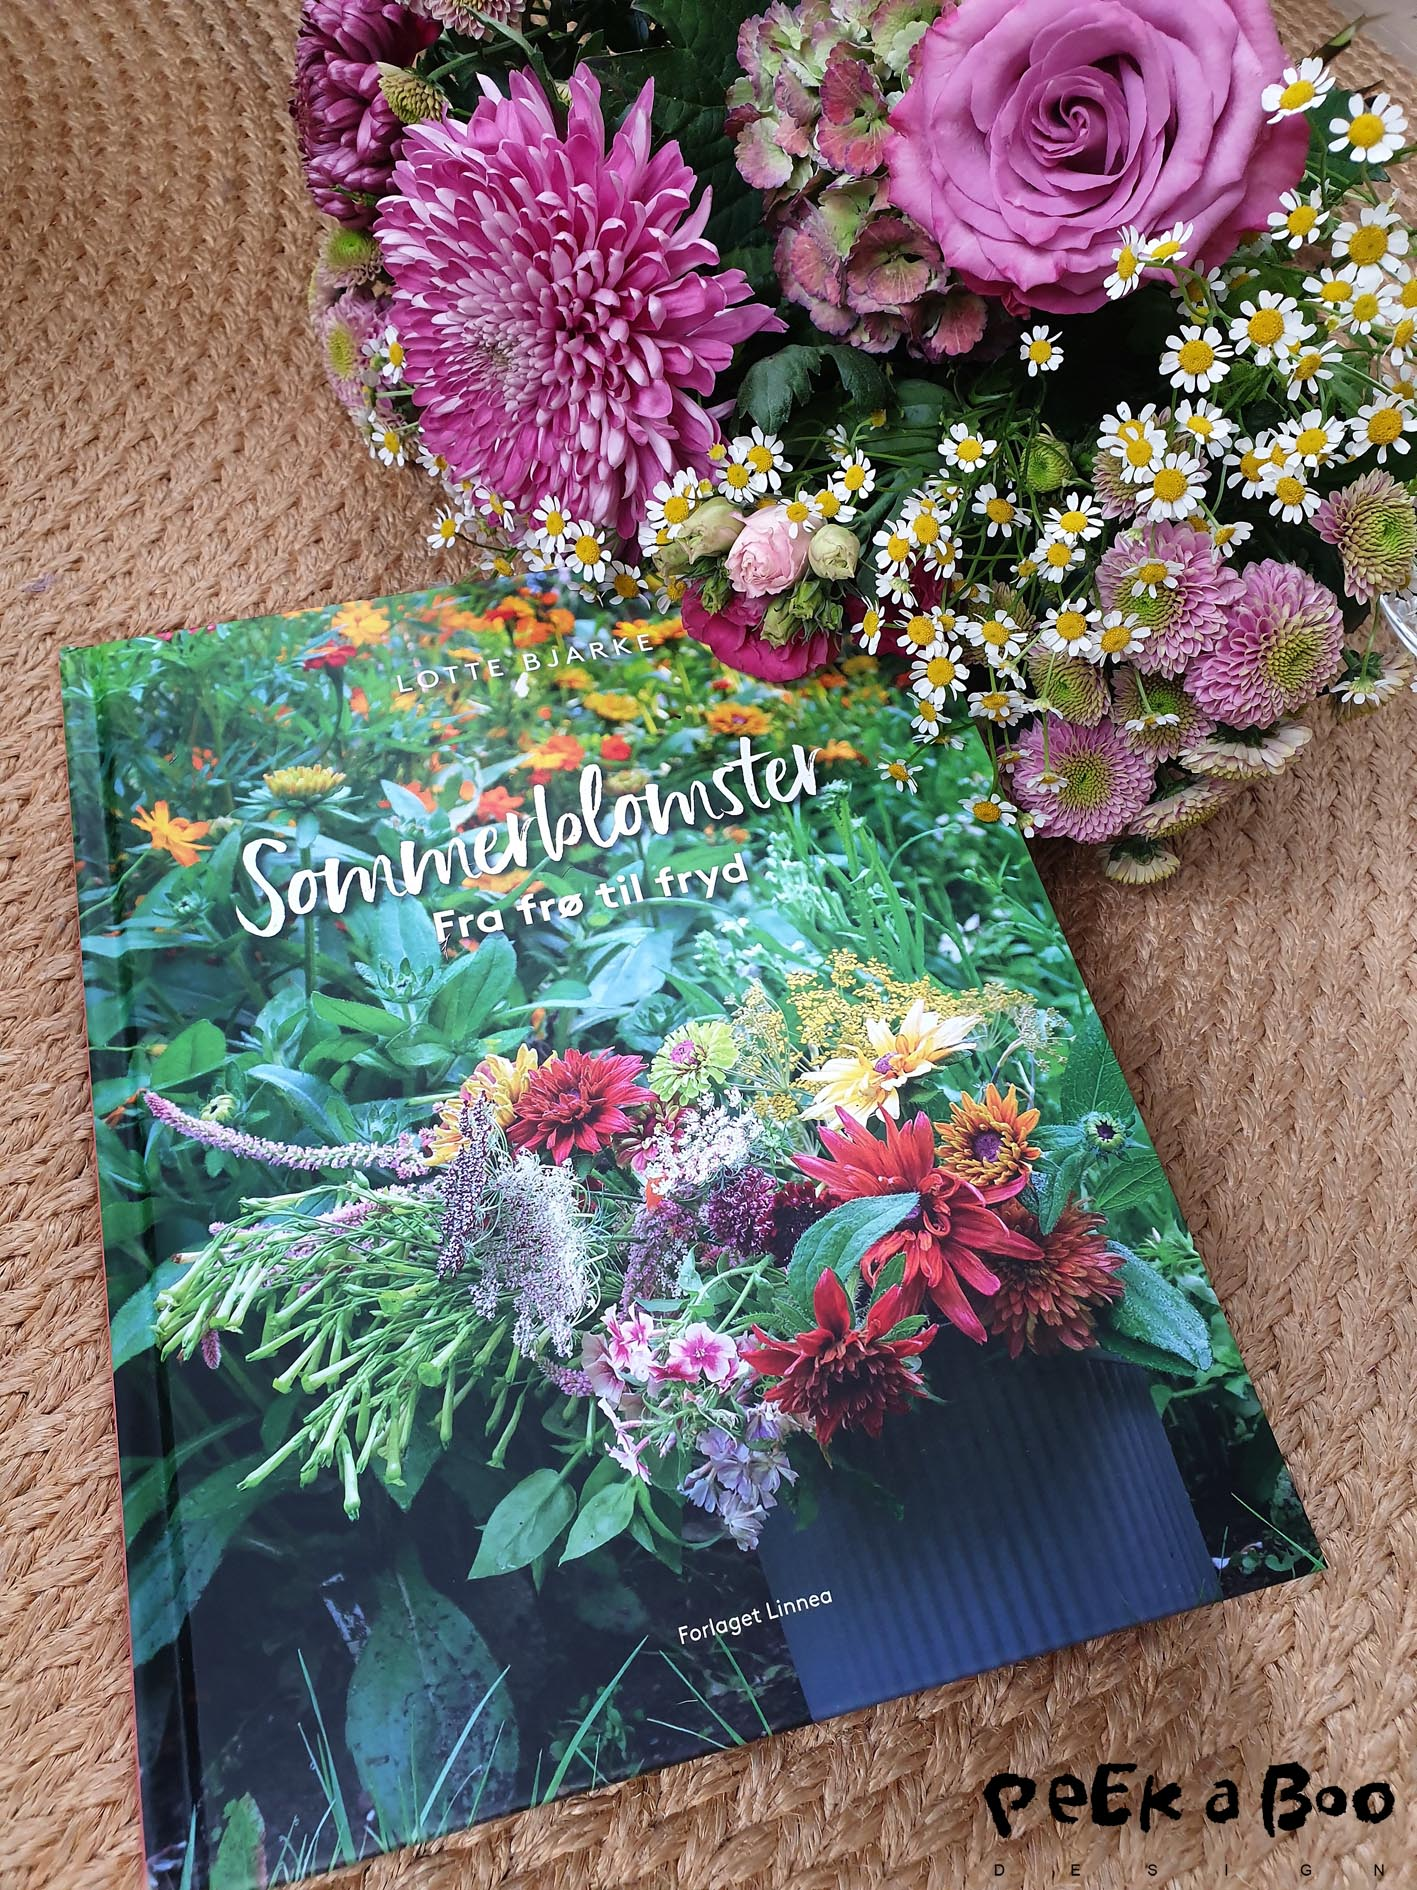 Sommerblomster is a total guide to how to grow your own flower garden.